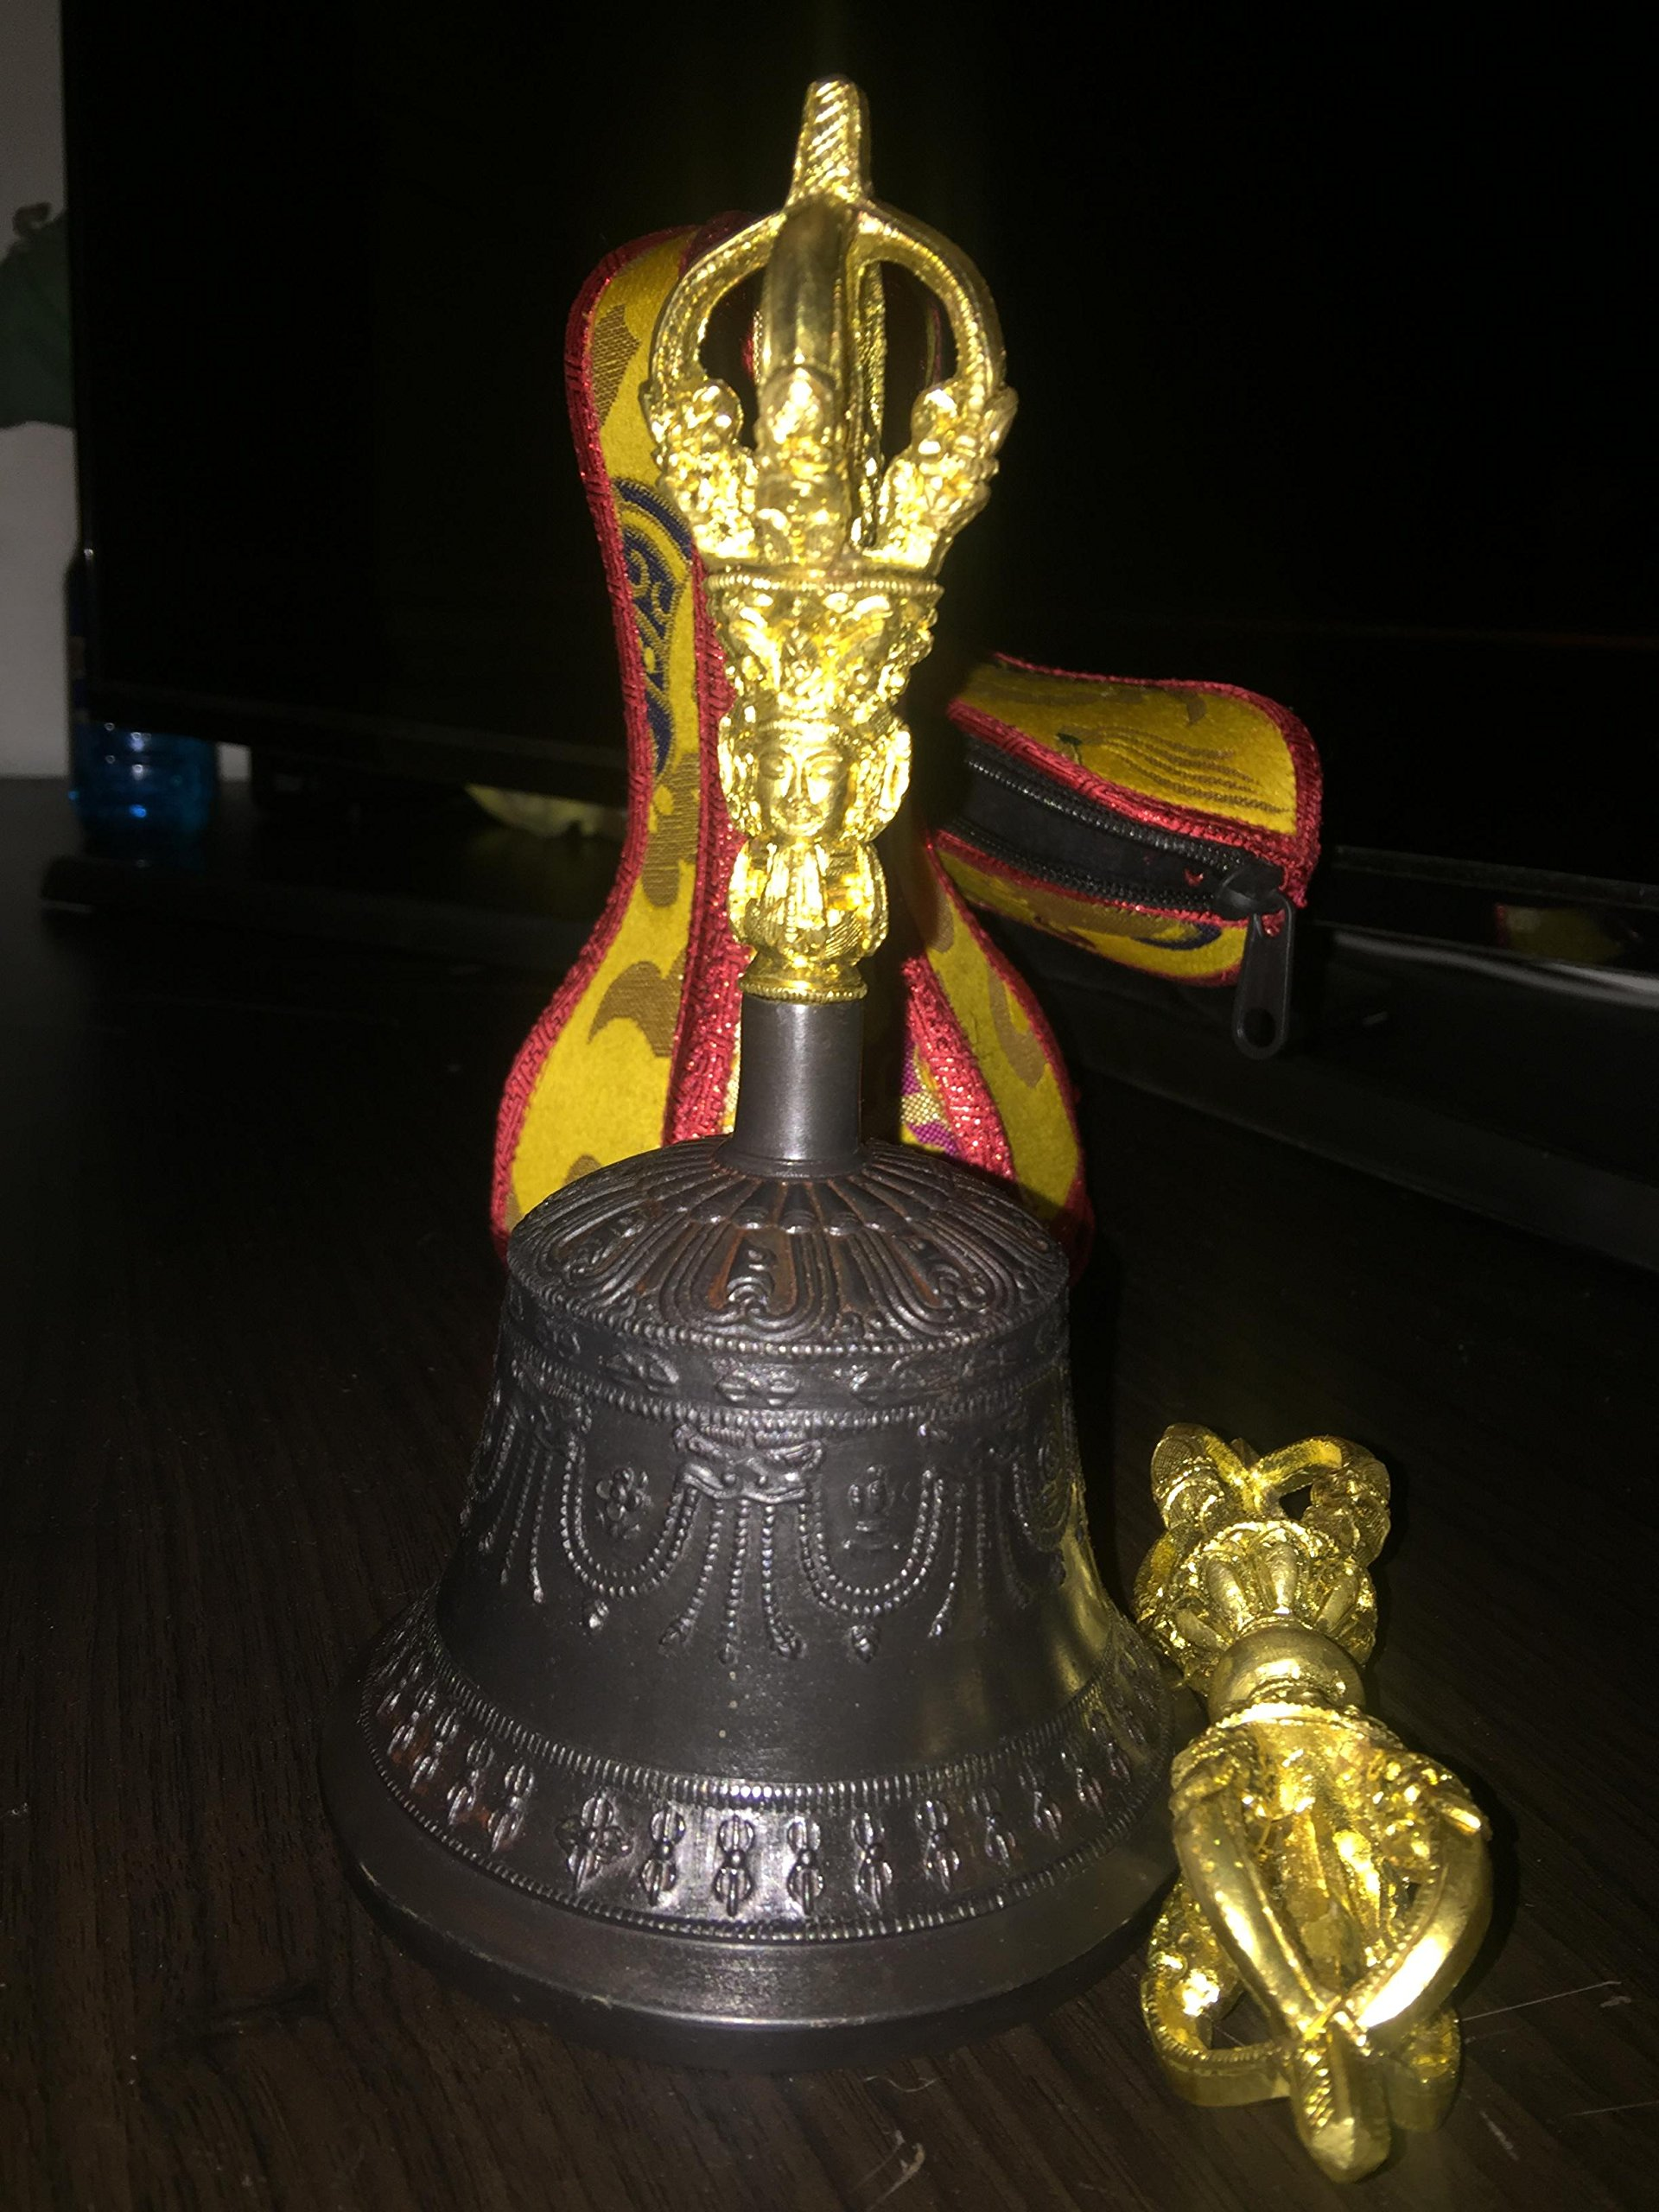 BUDDHIST SACRED SPIRITUAL TIBETAN BELL AND DORJE by TM THAMELMART FOR BEAUTIFUL MINDS